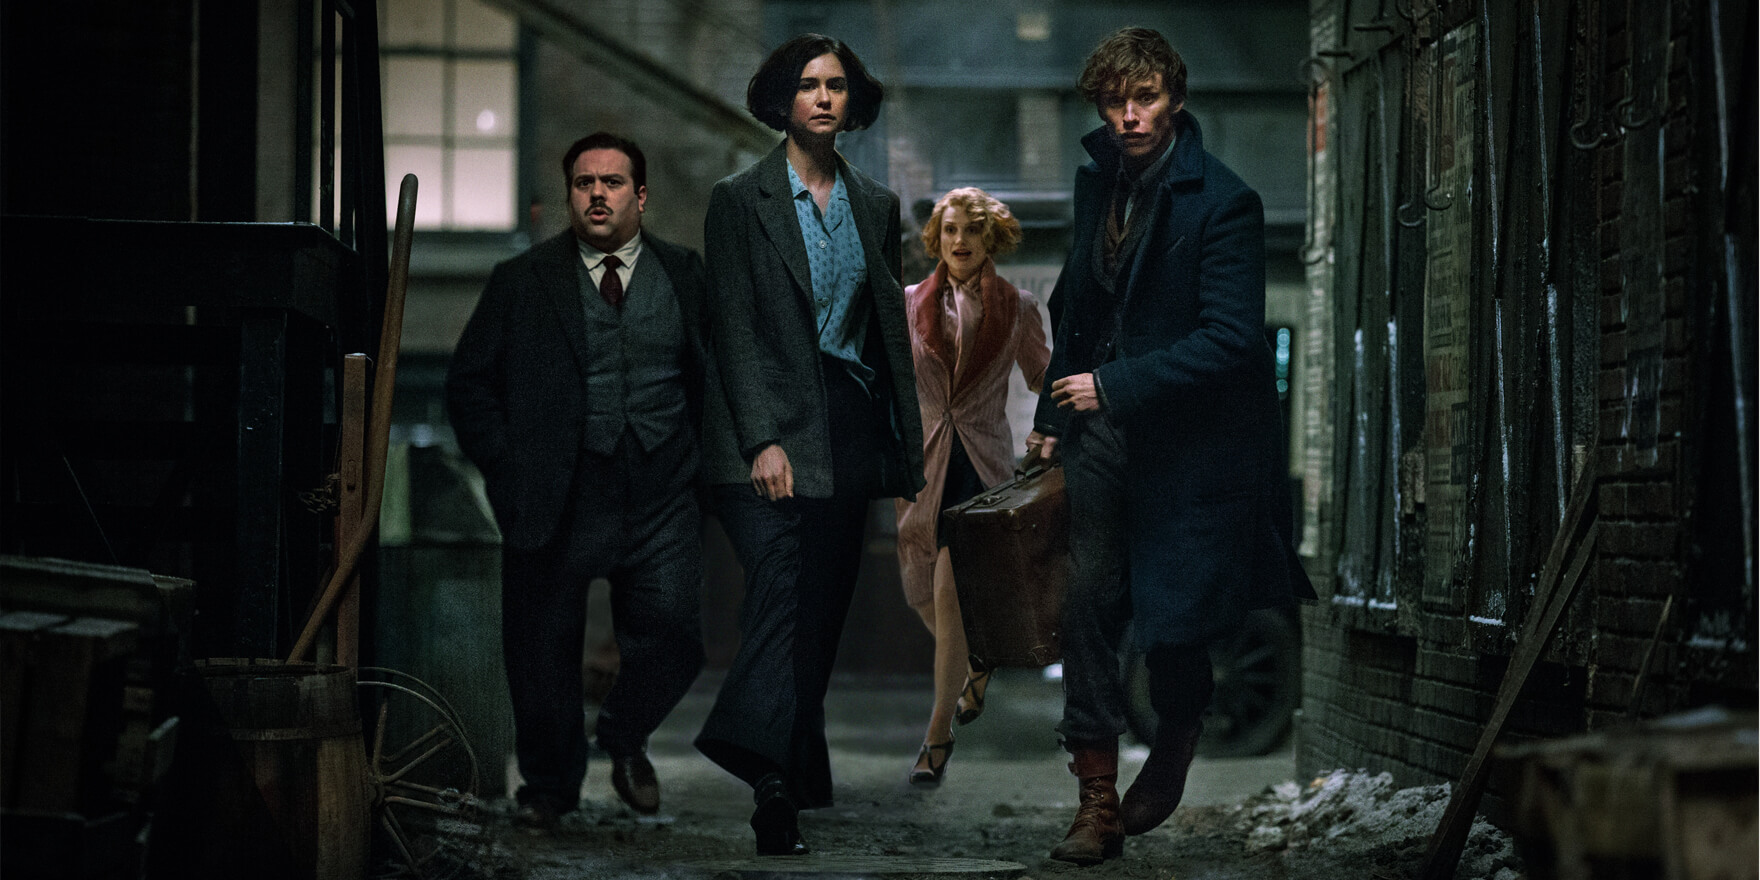 Fantastic Beasts and Where to Find Them - Header Image